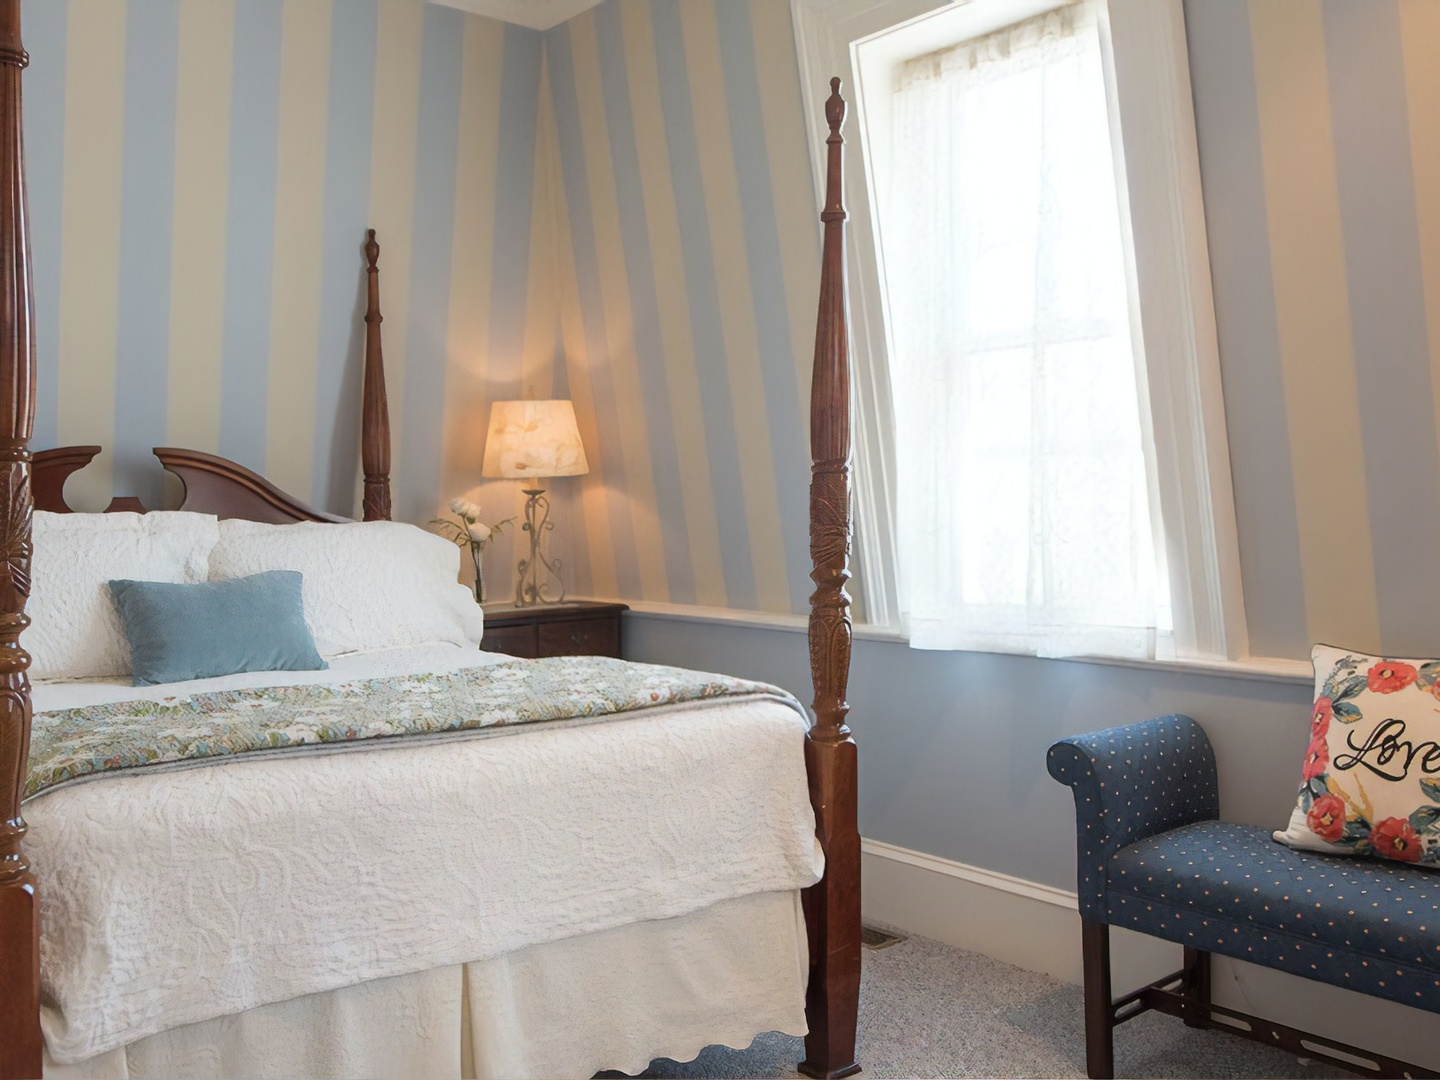 A bedroom with a bed and a chair in a room at Captain Farris House.